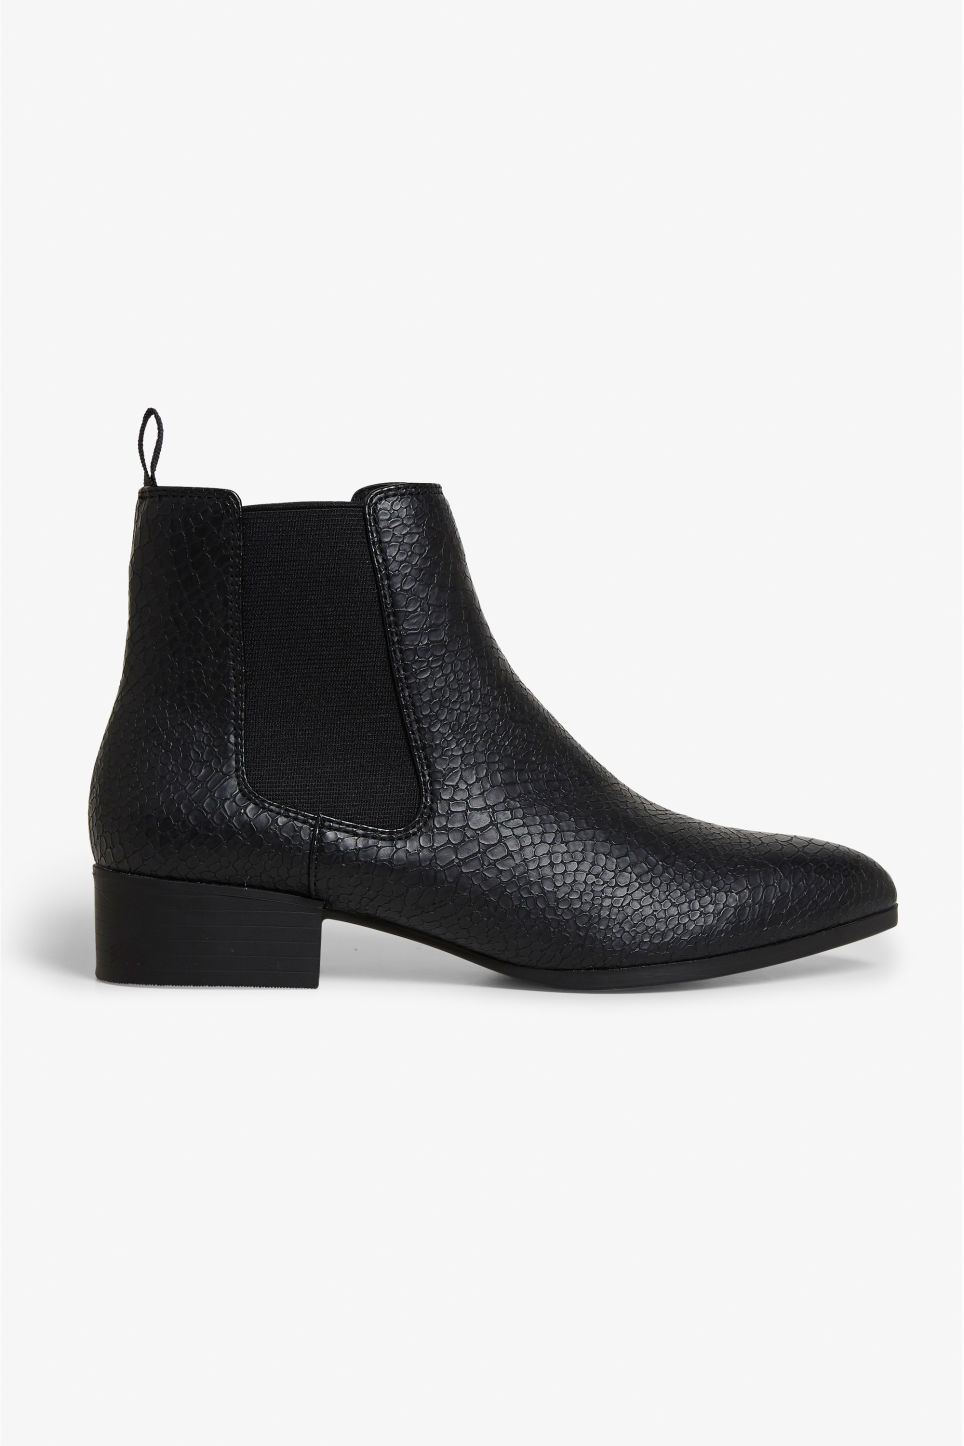 Detailed image of Monki chelsea ankle boots in black